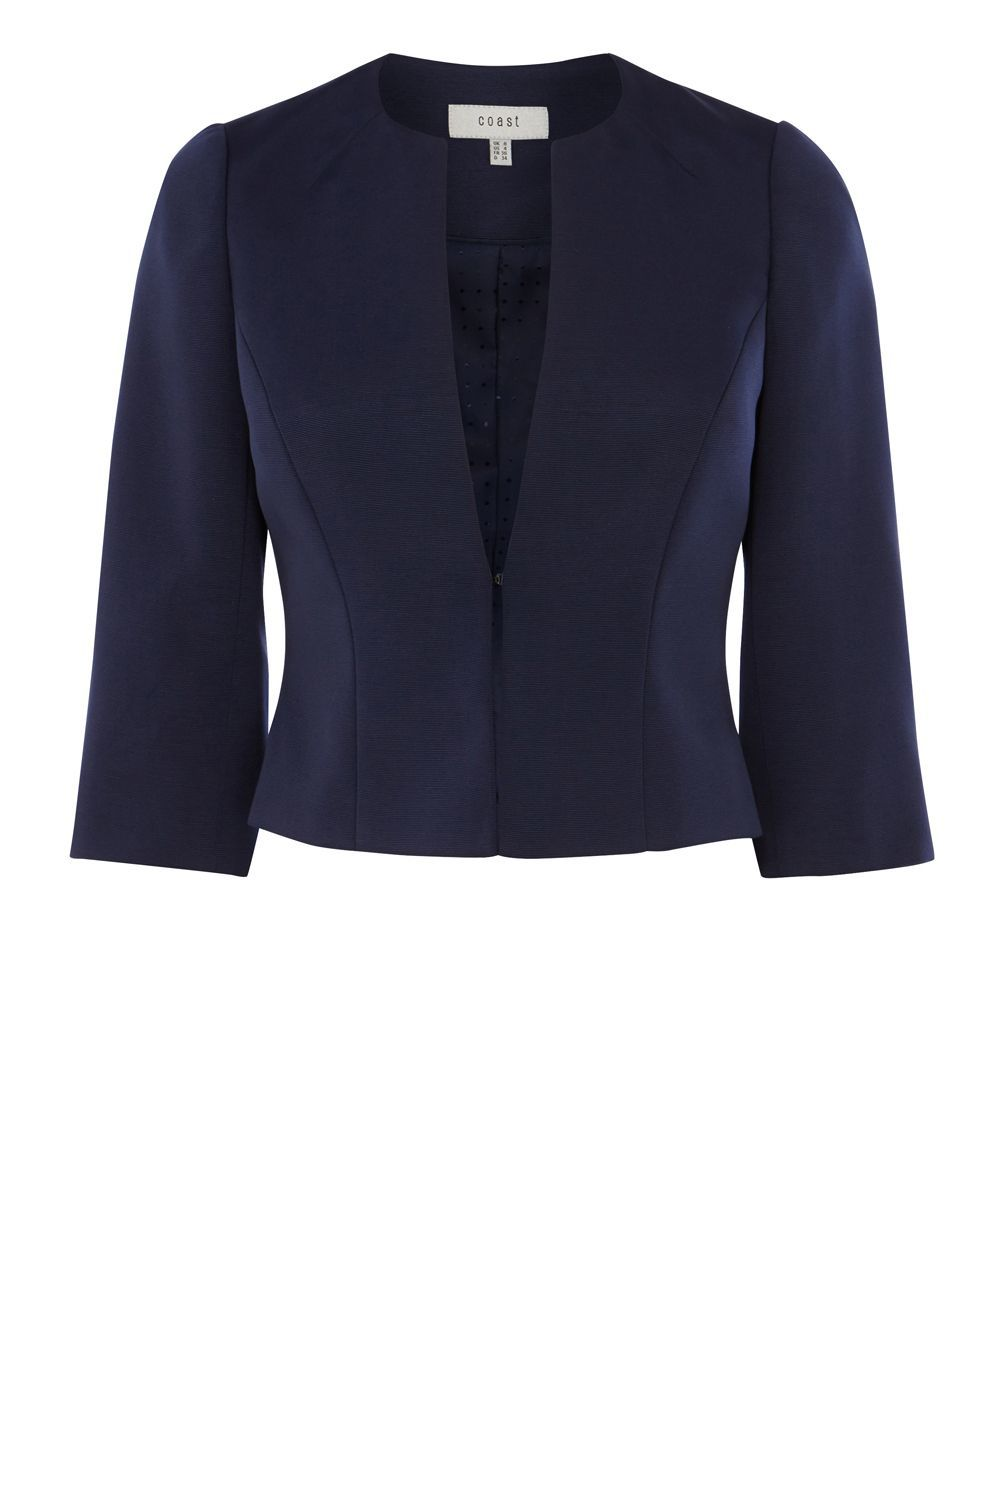 Kemara Ottoman Jacket, Navy - pattern: plain; style: single breasted blazer; collar: round collar/collarless; predominant colour: navy; fit: tailored/fitted; fibres: polyester/polyamide - 100%; occasions: occasion; sleeve length: 3/4 length; sleeve style: standard; texture group: crepes; collar break: low/open; pattern type: fabric; length: cropped; season: s/s 2016; wardrobe: event